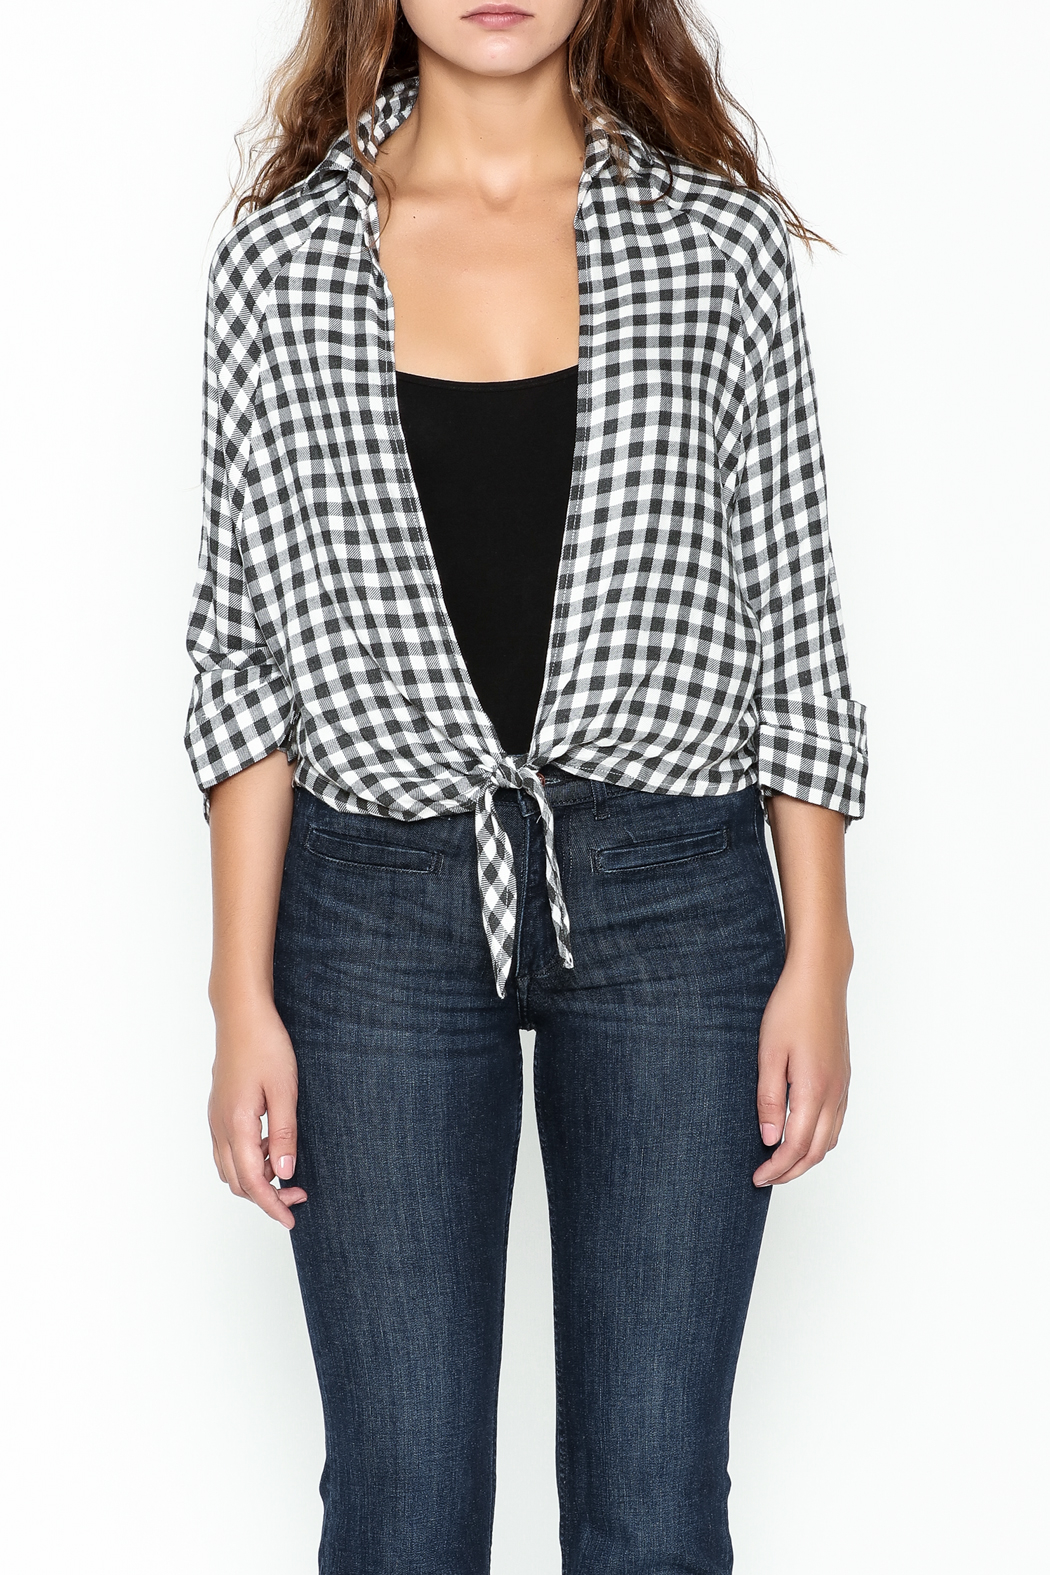 dress forum Checkered Knot Shirt - Front Full Image